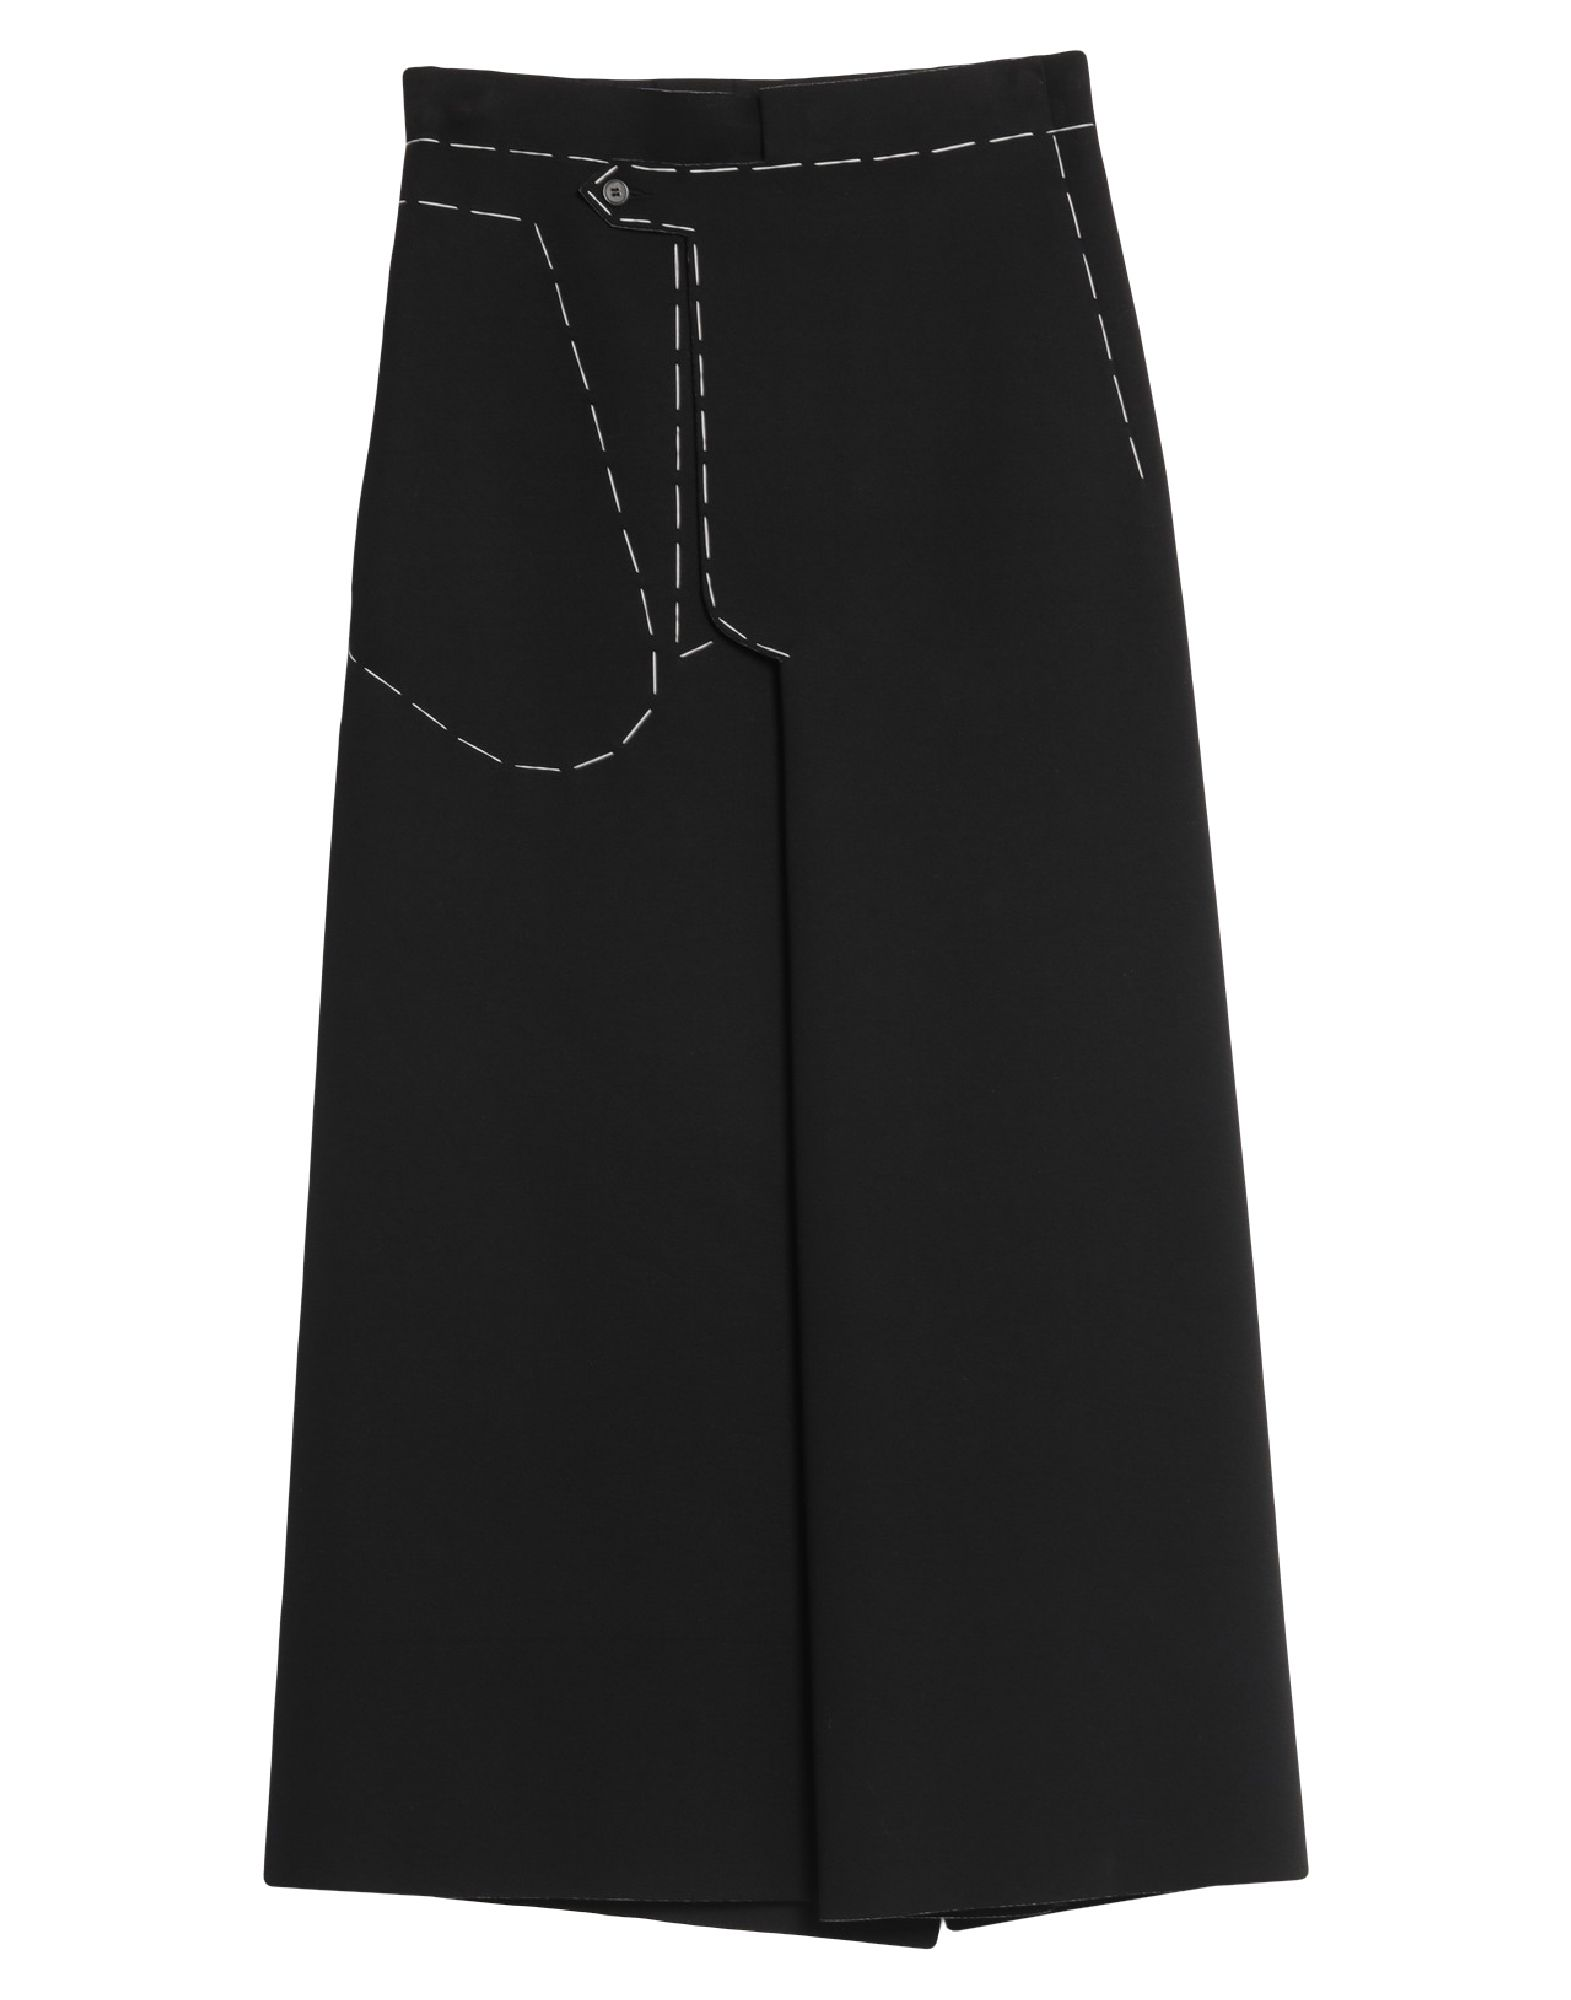 MAISON MARGIELA Long skirts. neoprene, stitching, basic solid color, mid rise, no pockets, front closure, button closing, unlined, rear slit. 100% Viscose, Polyurethane